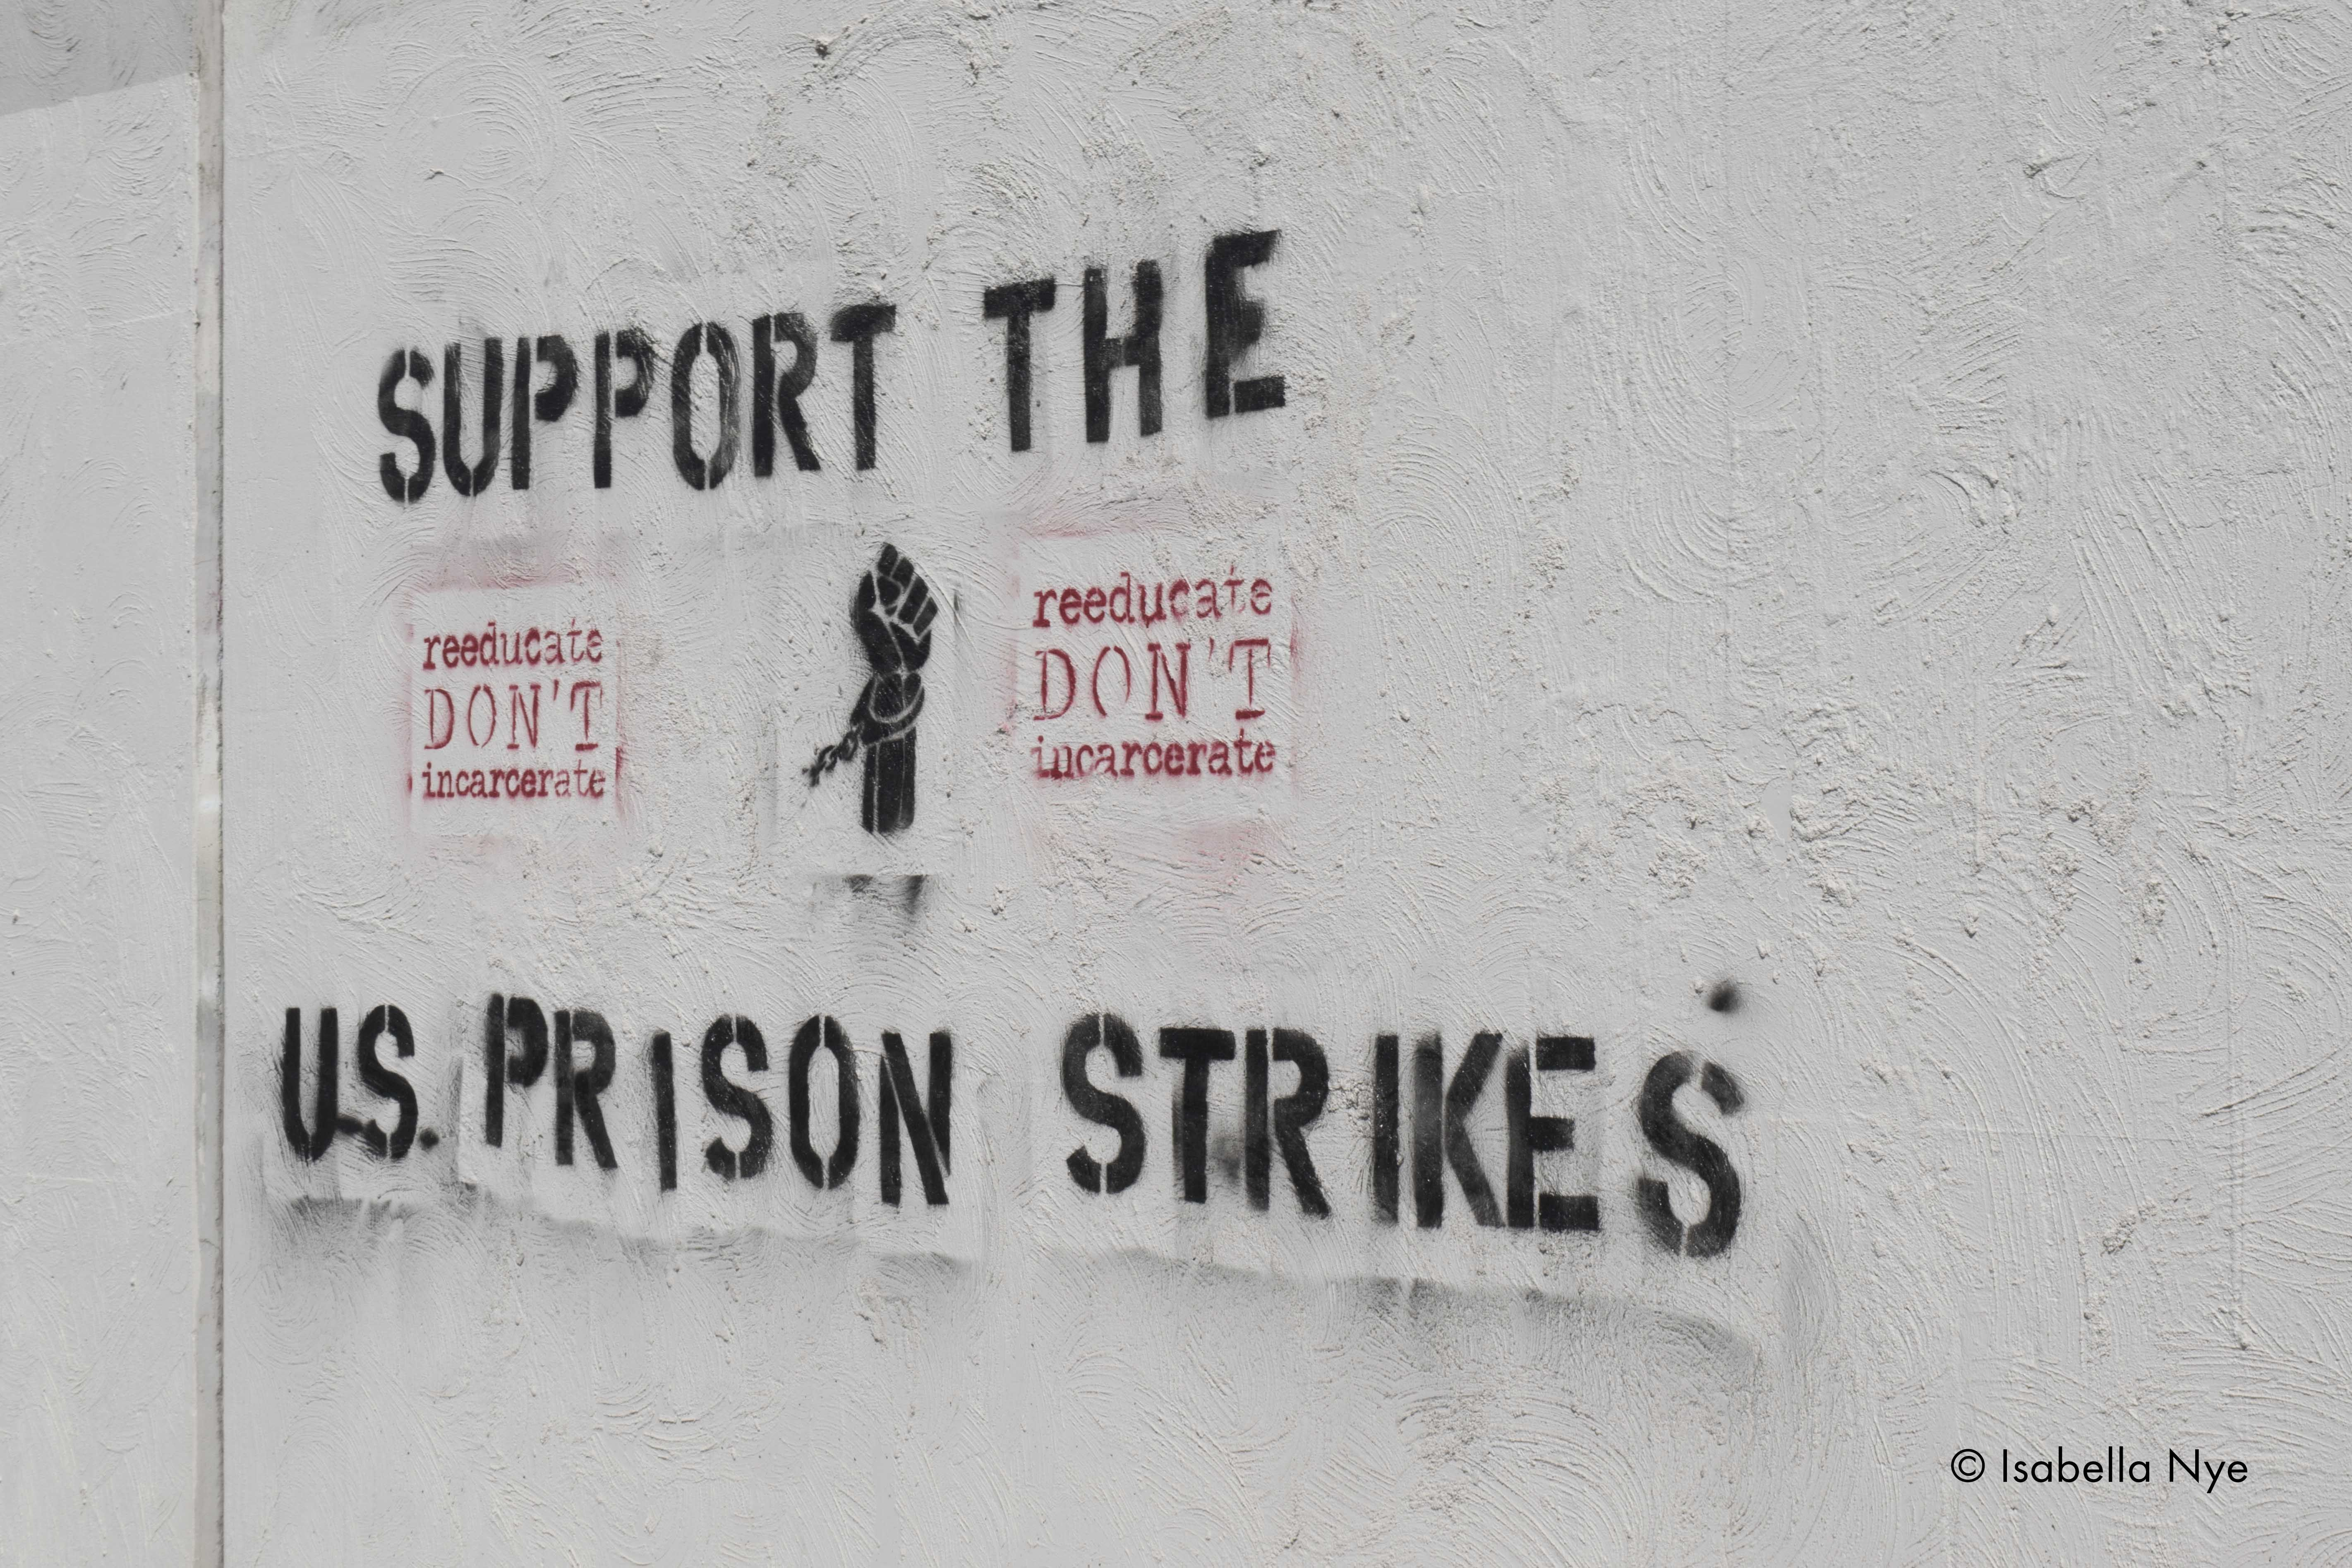 Protest Message Support Strikes Prison Us Unitedstates Melbourne Hardhitting Text Spraypaint Stencil Graffiti Meaning Silkscreen Text Text Types